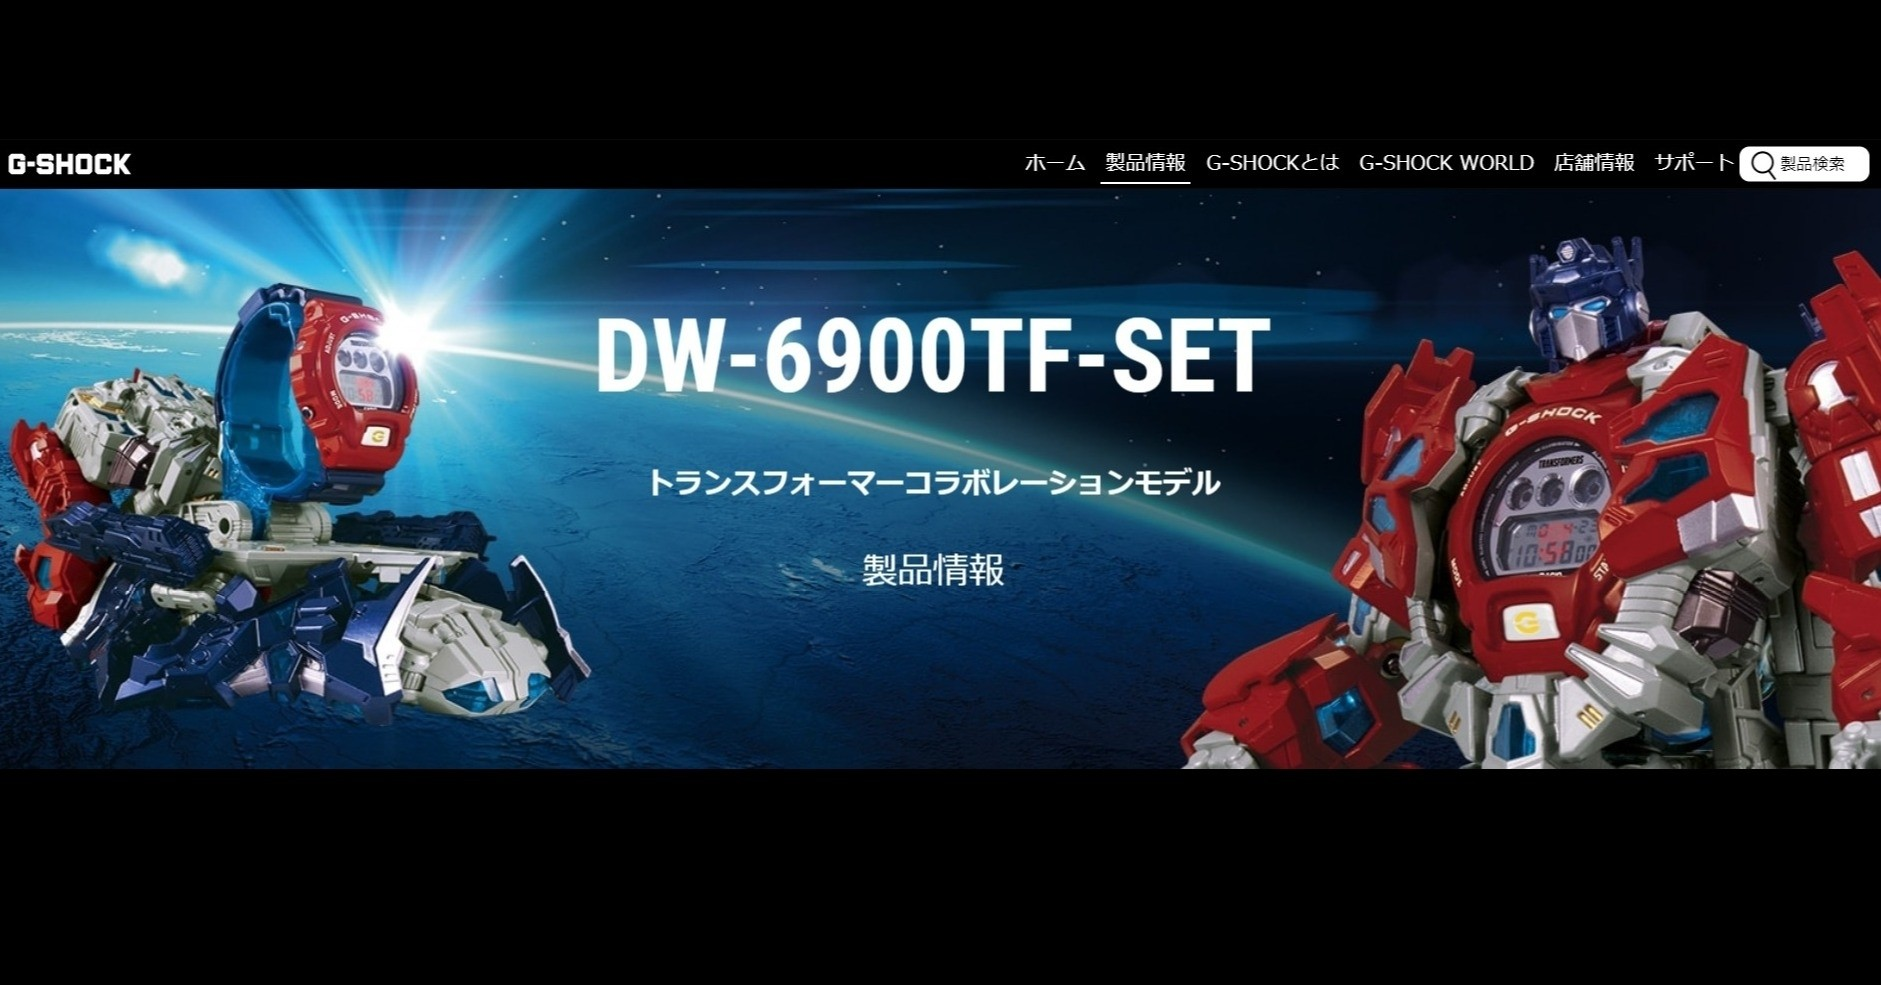 Watch, Video Games, , , G-Shock DW-6900, Optimus Prime, Casio, Game, PC game, Transformers, Video game, pc game, product, technology, computer wallpaper, screenshot, graphics, video game software, advertising, space, brand